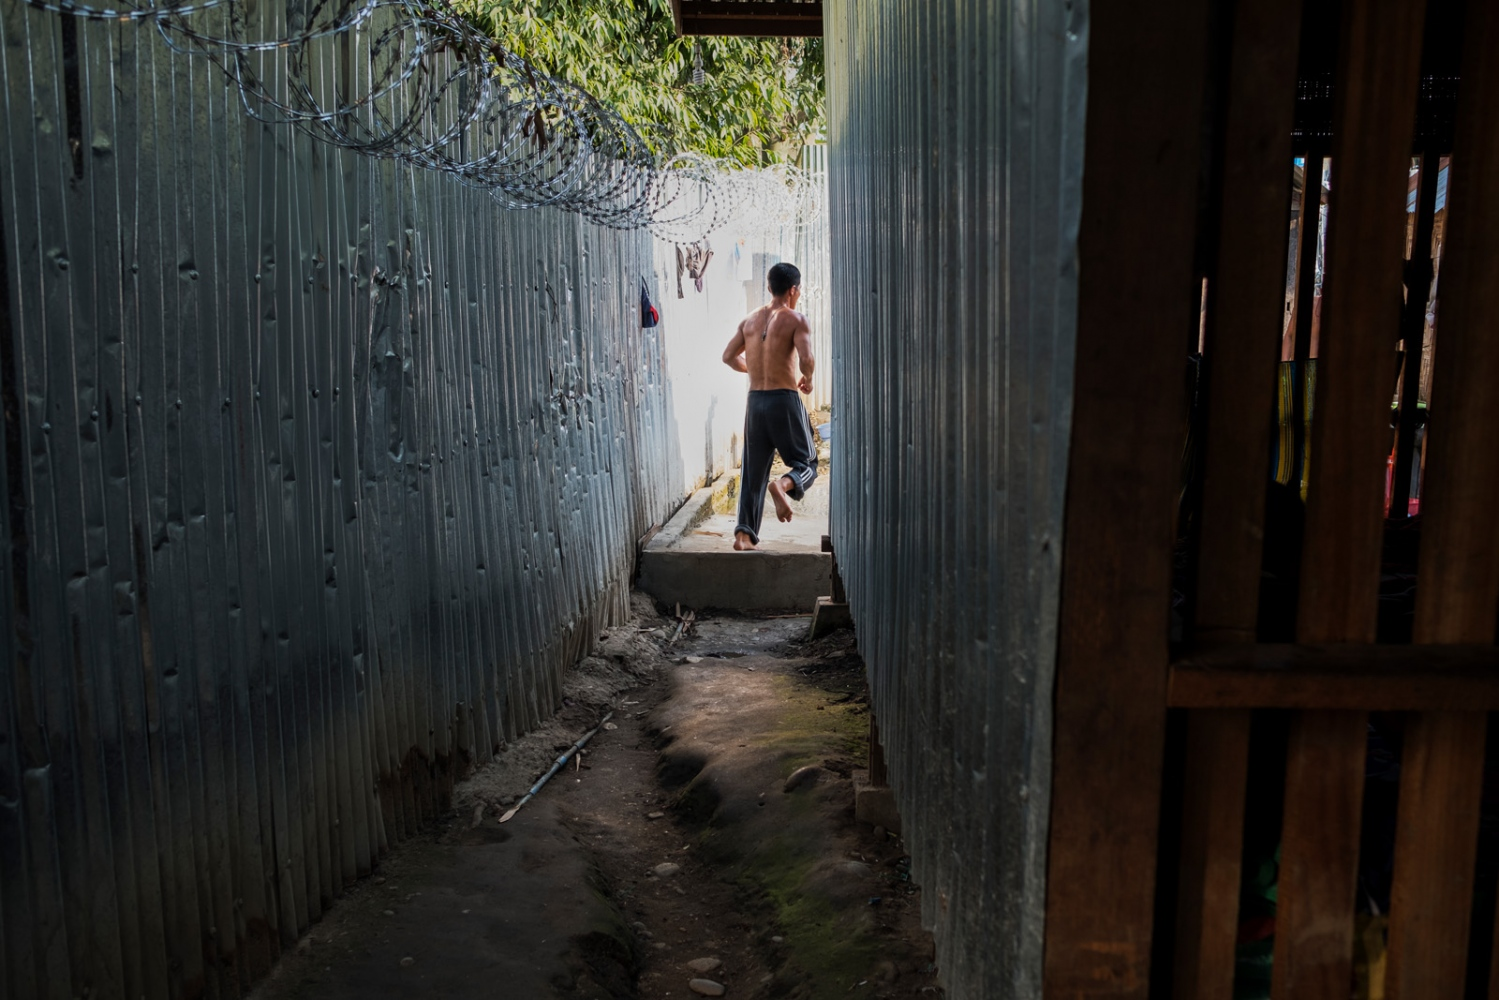 A client runs through an alley with barbed wire fencing at a Pat Jasan drug rehabilitation center in Myitkyina, Kachin state, Myanmar.